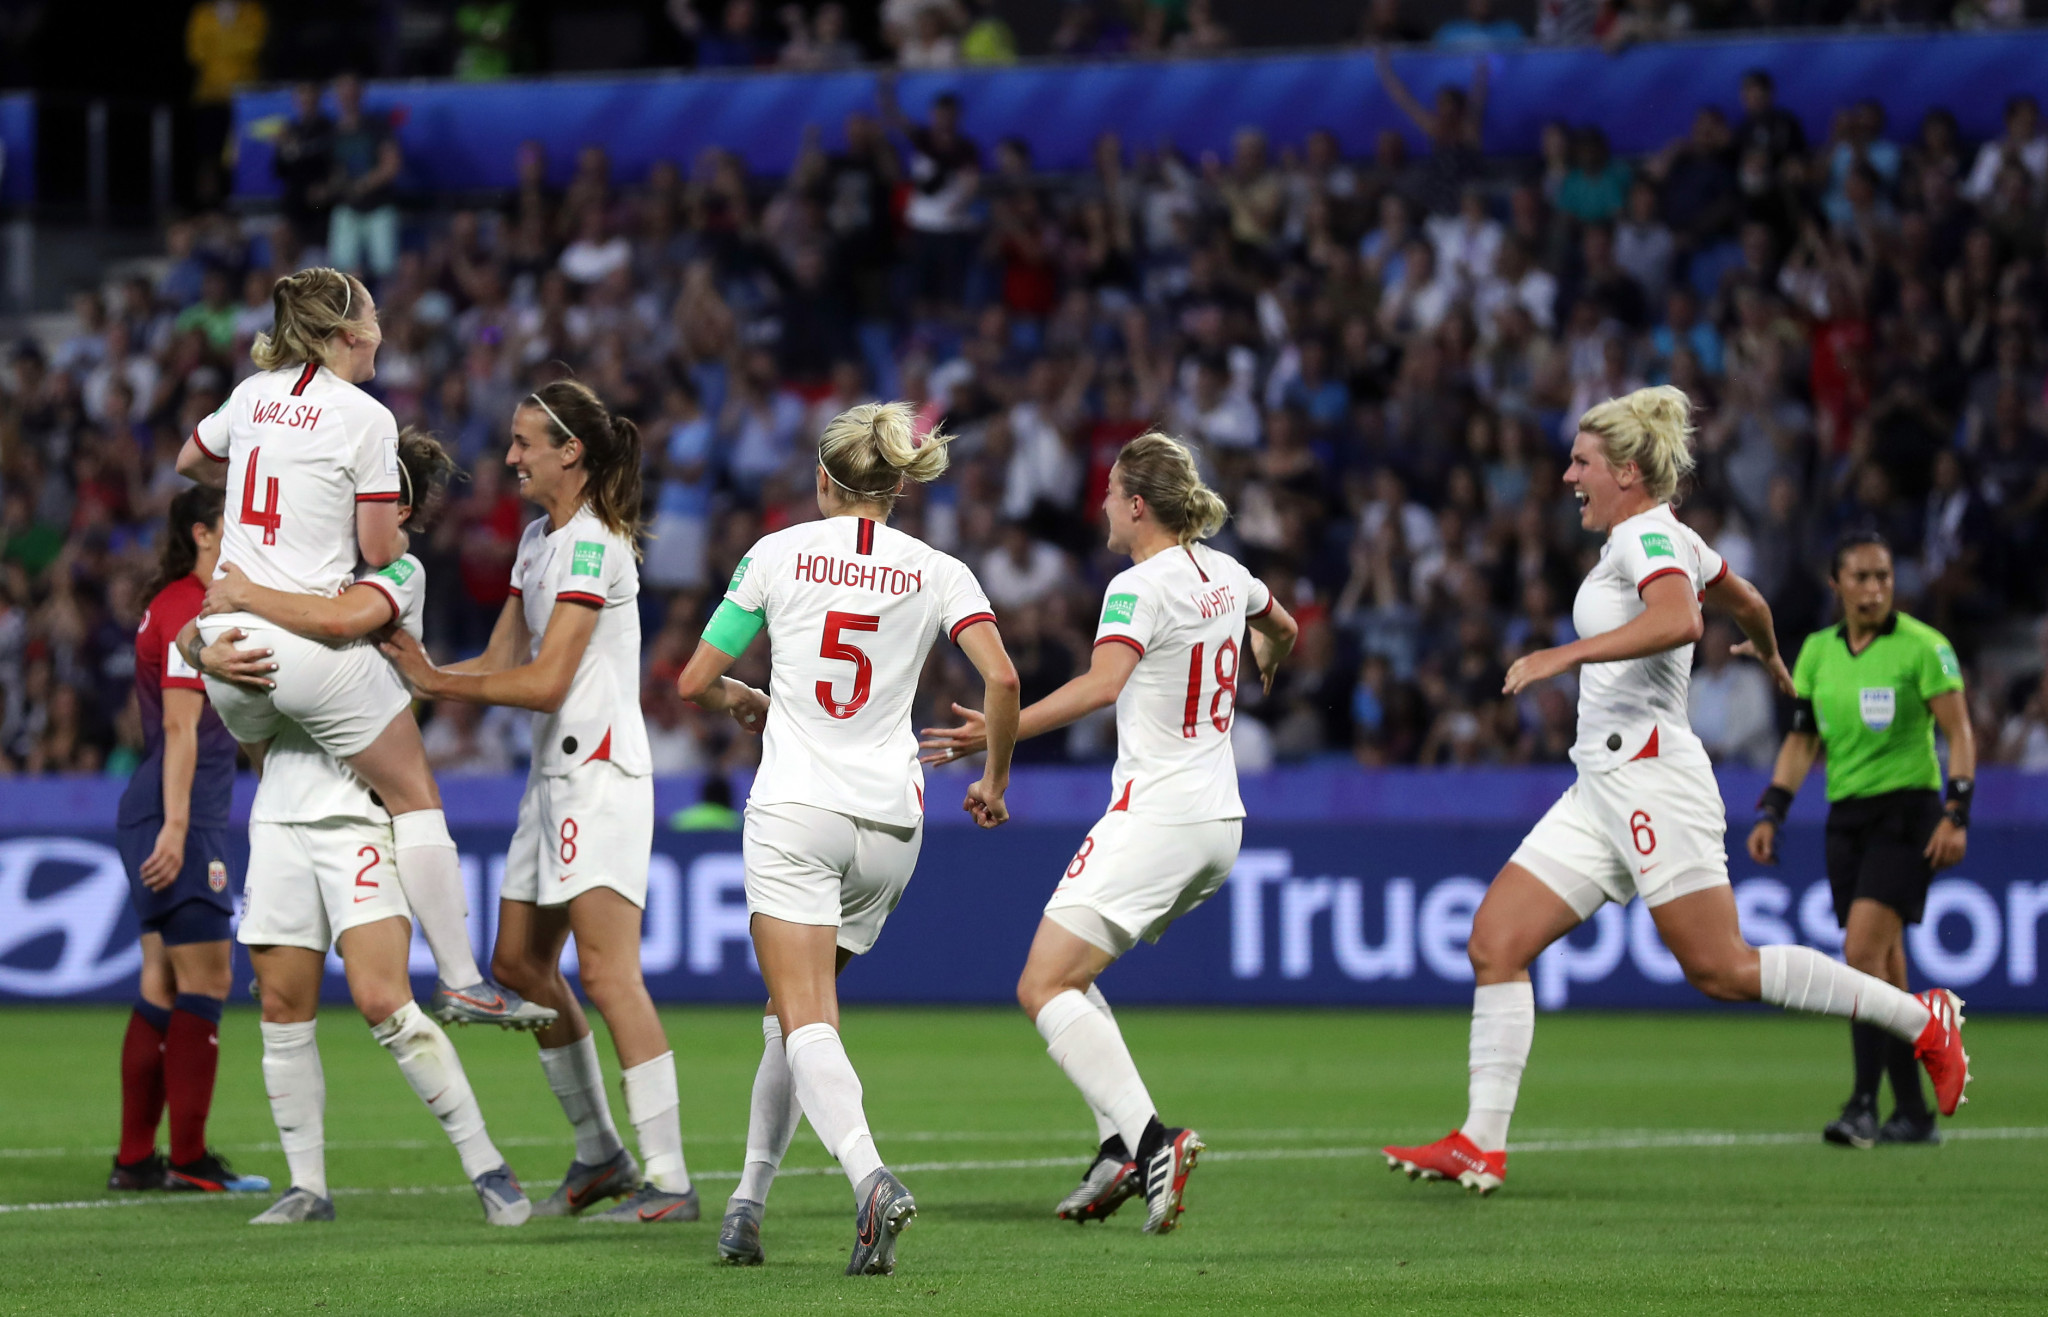 England Team World Cup 2020.England Manager To Lead Team Gb Women S Football Team At